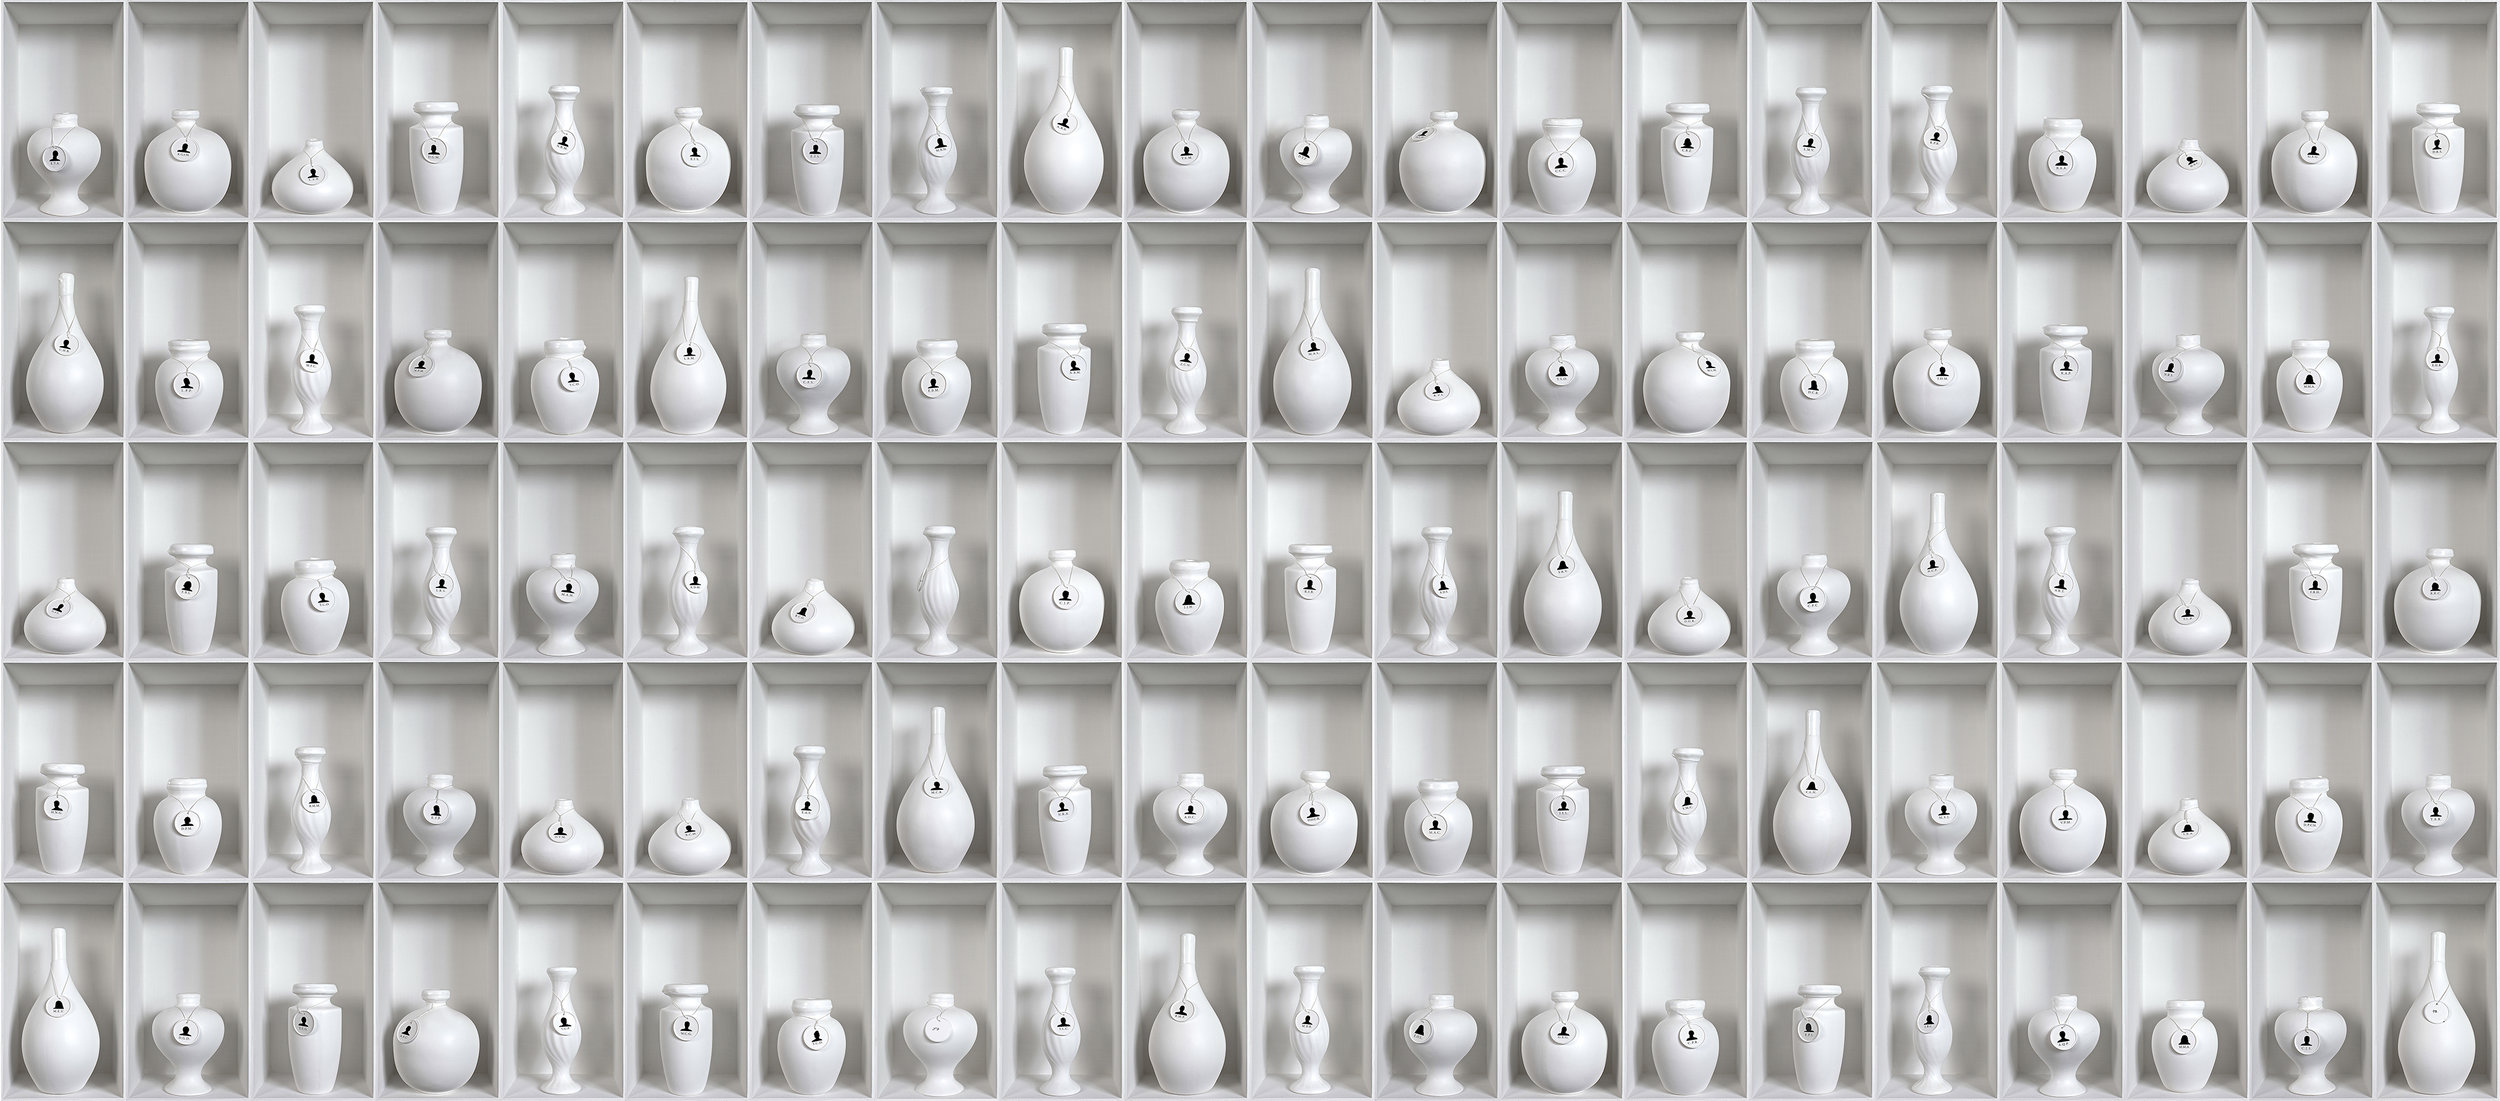 RUBY RUMIE:  HALITO DIVINO - WHITE VESSELS (L) , 2013, photographs mounted on foam board, ed.5,74.8 x 173.23 in. 190 x 440 cm., each panel: 74.8 x 43.31 in. 190 x 110 cm.